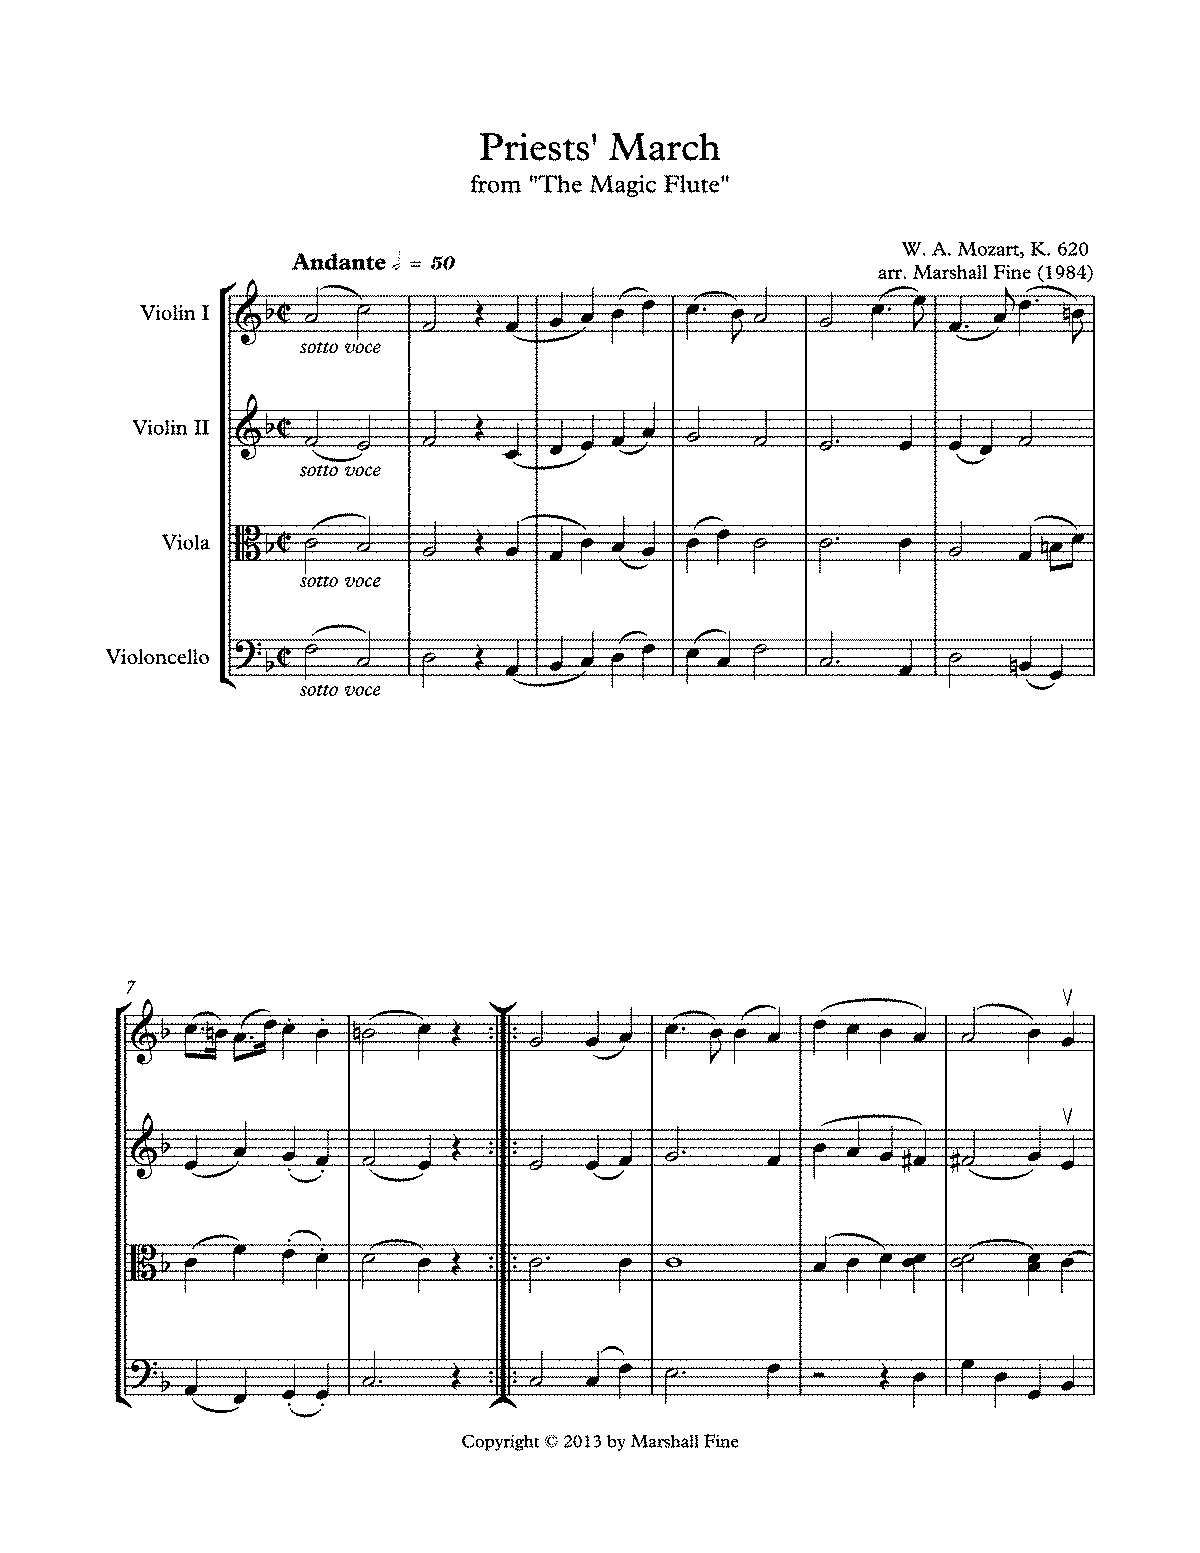 PMLP20137-Magic Flute Priests' March - score and parts.pdf